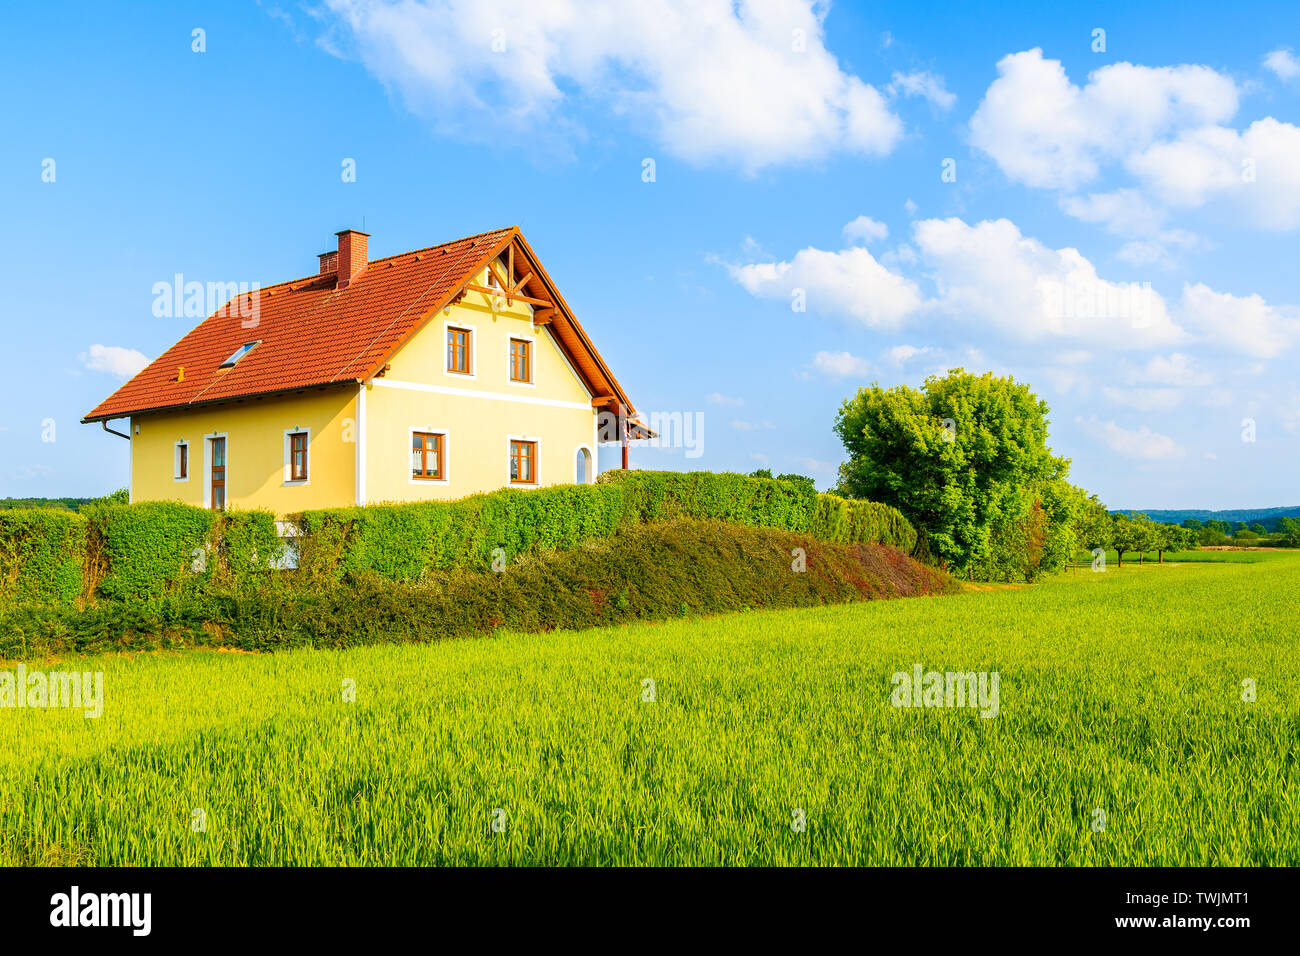 Yellow traditional house with red tile roof on green meadow in spring landscape of Burgerland in Strem village, Austria Stock Photo